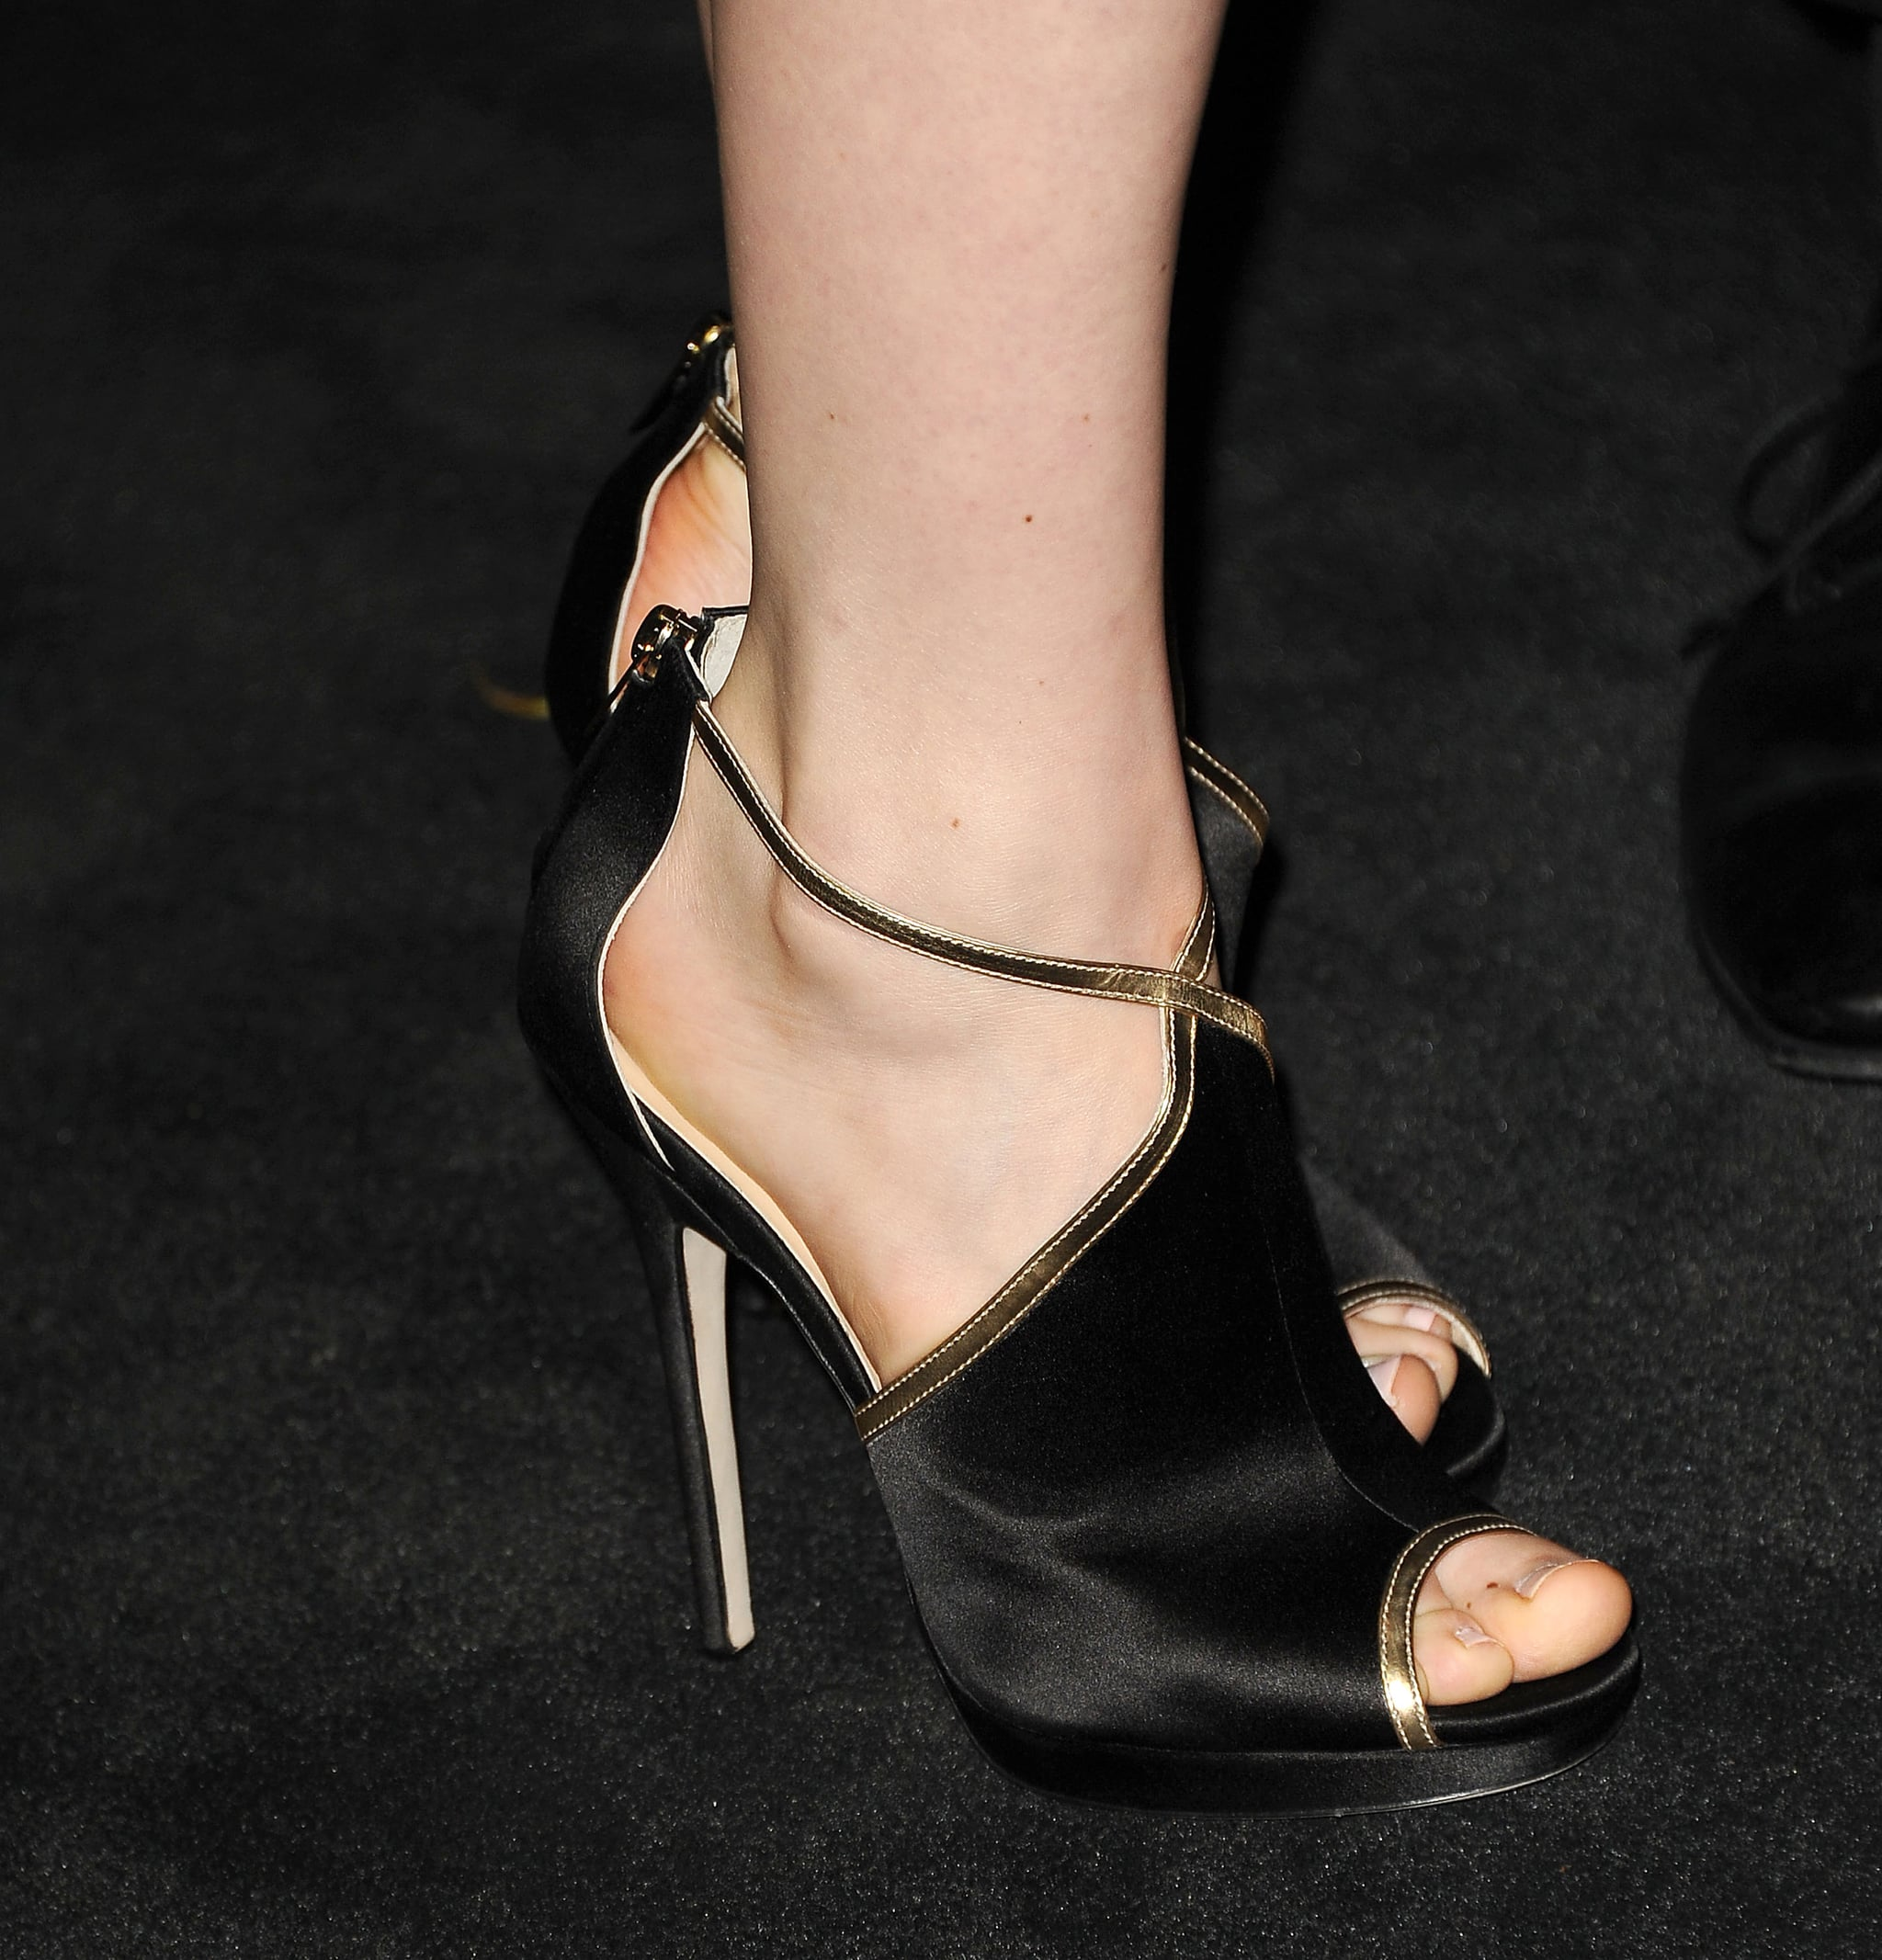 Bella Heathcote added edge to her floral Chanel dress with black-and-gold Jimmy Choo sandals at Chanel's bash.